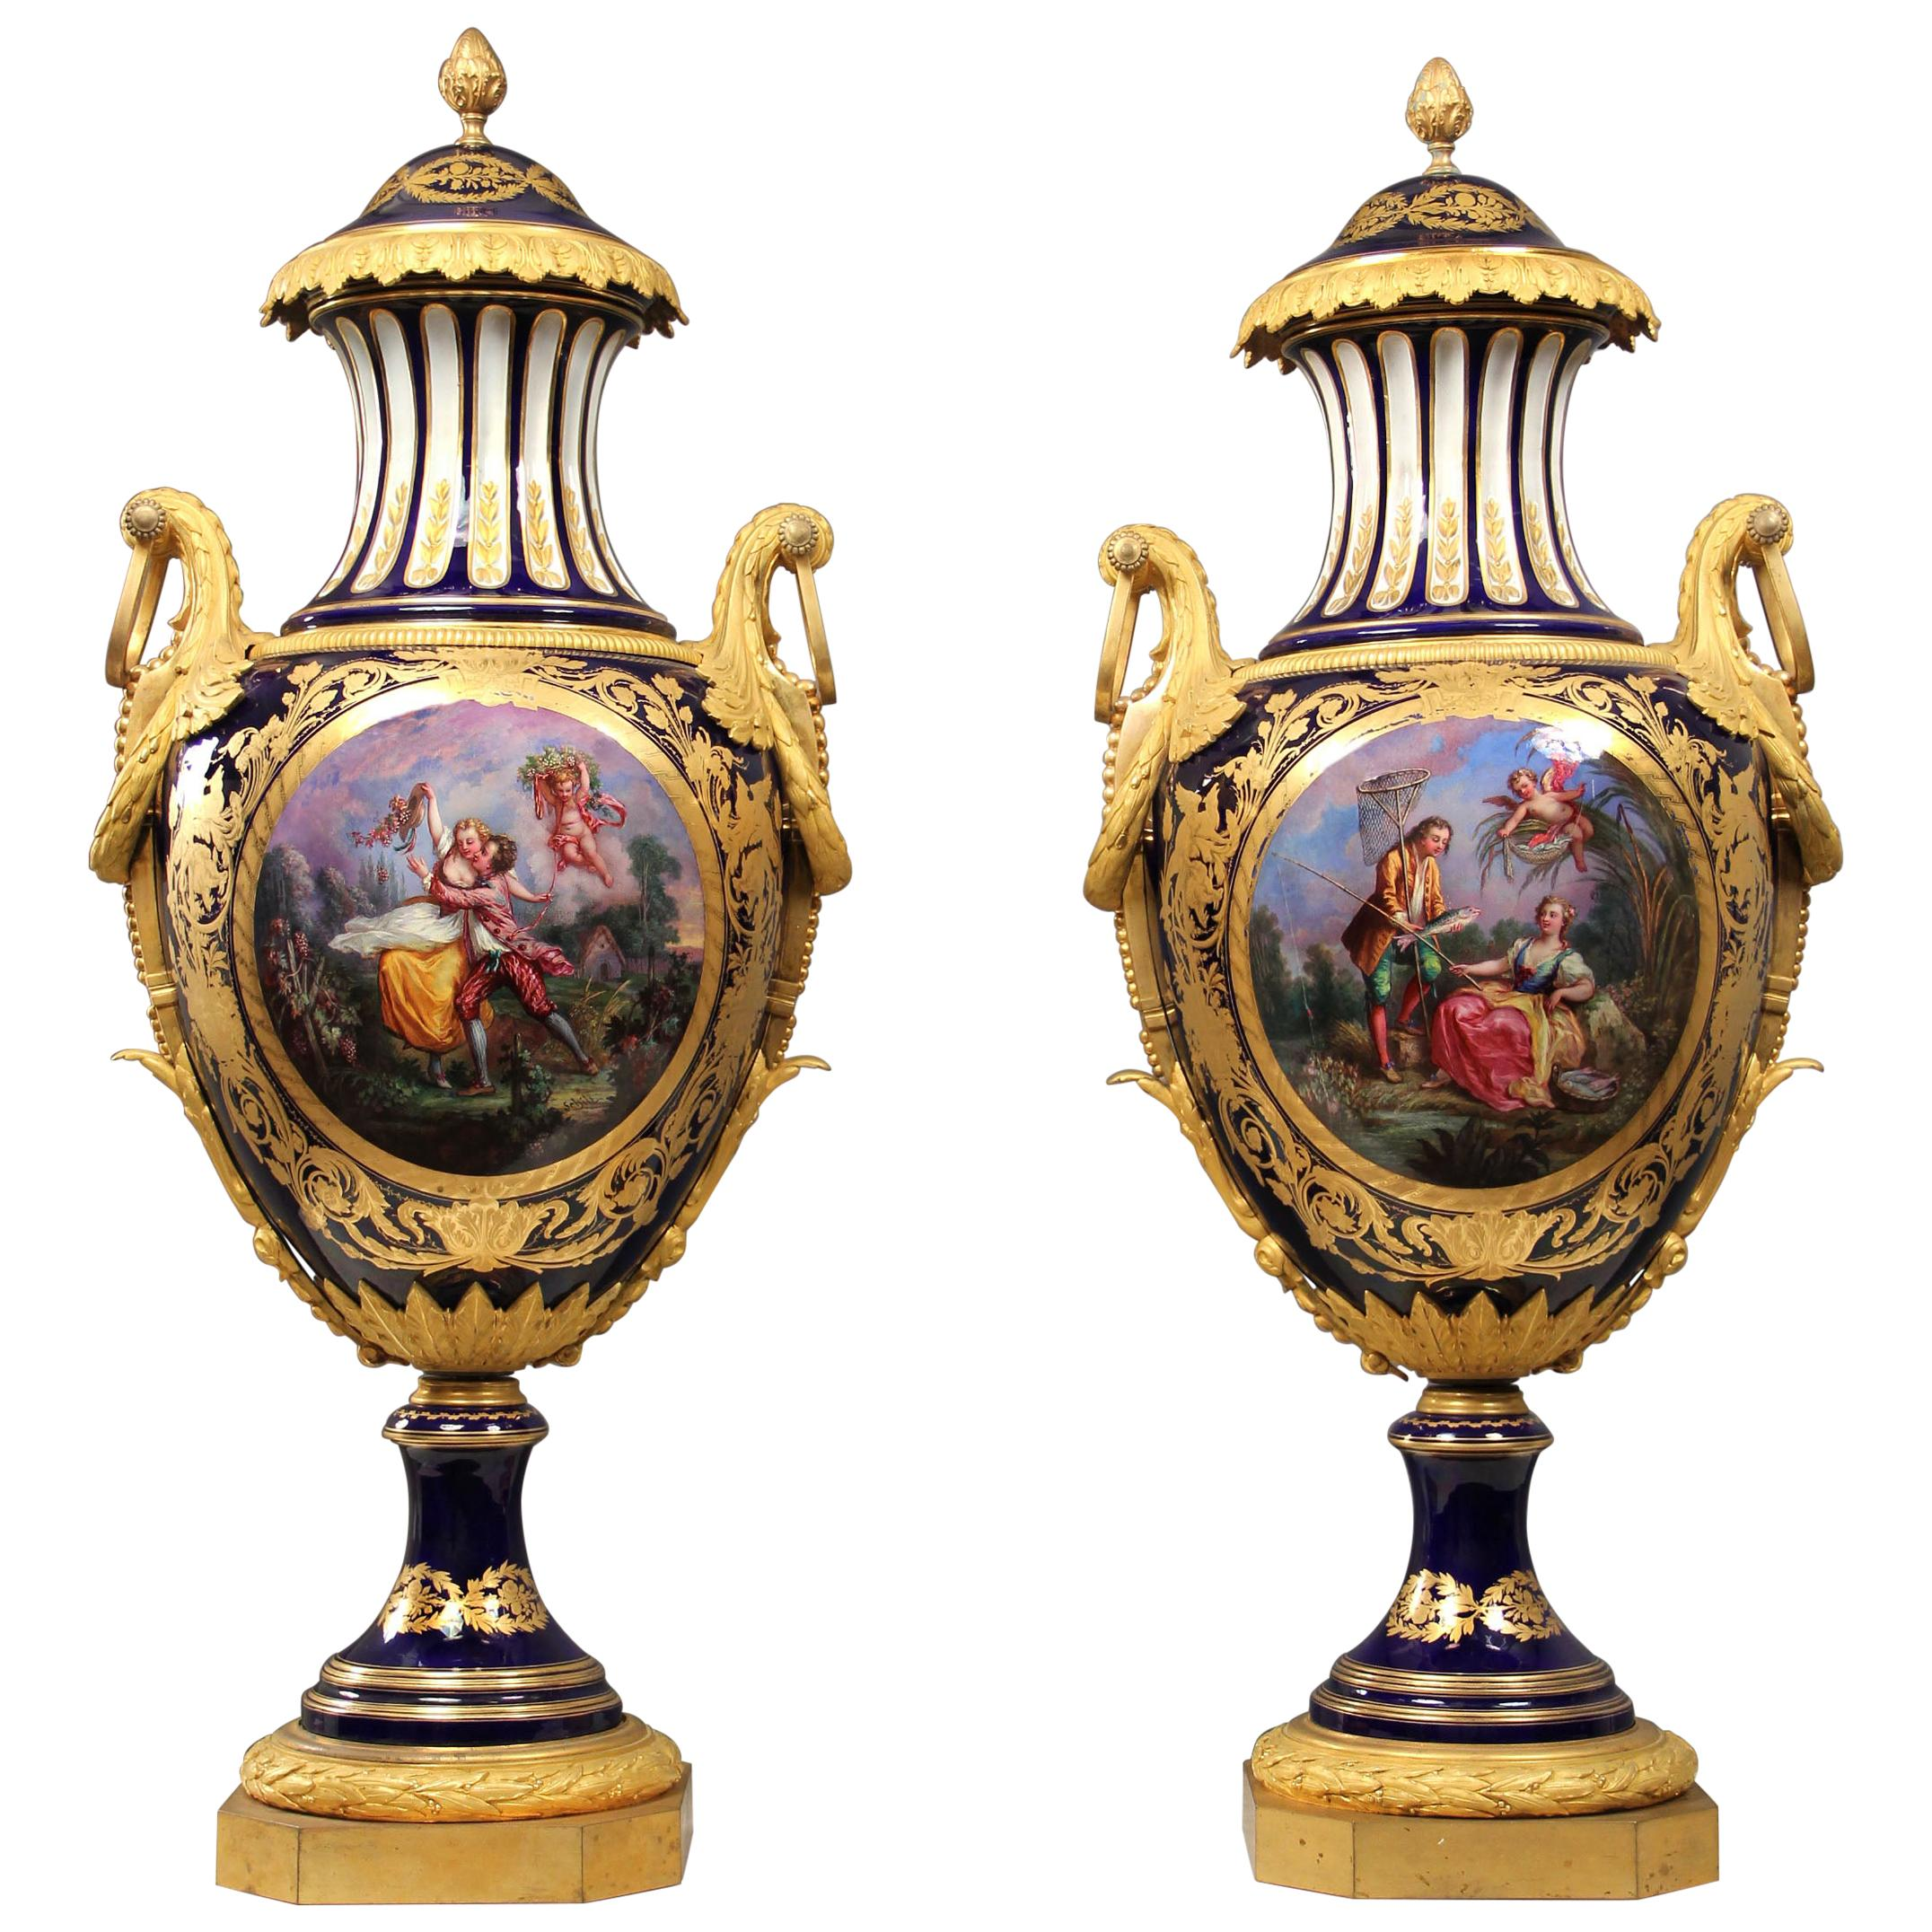 Palatial Pair of Late 19th Century Bronze Mounted Sèvres Style Porcelain Vases